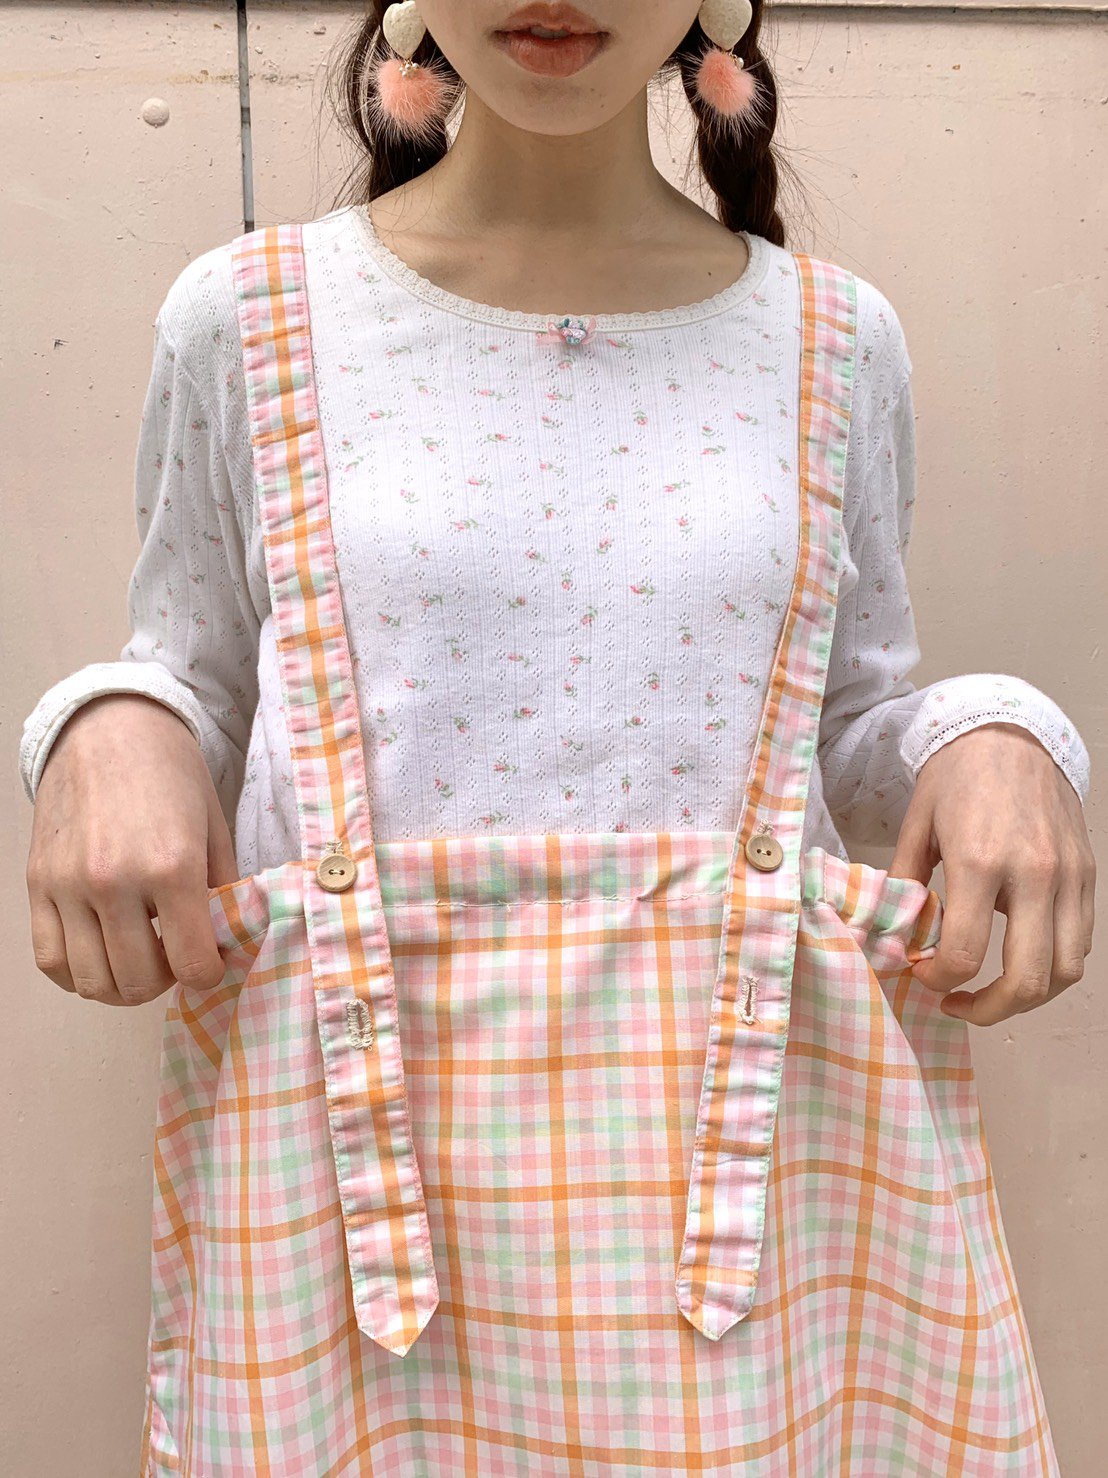 42.orange green pink check jumper skirt